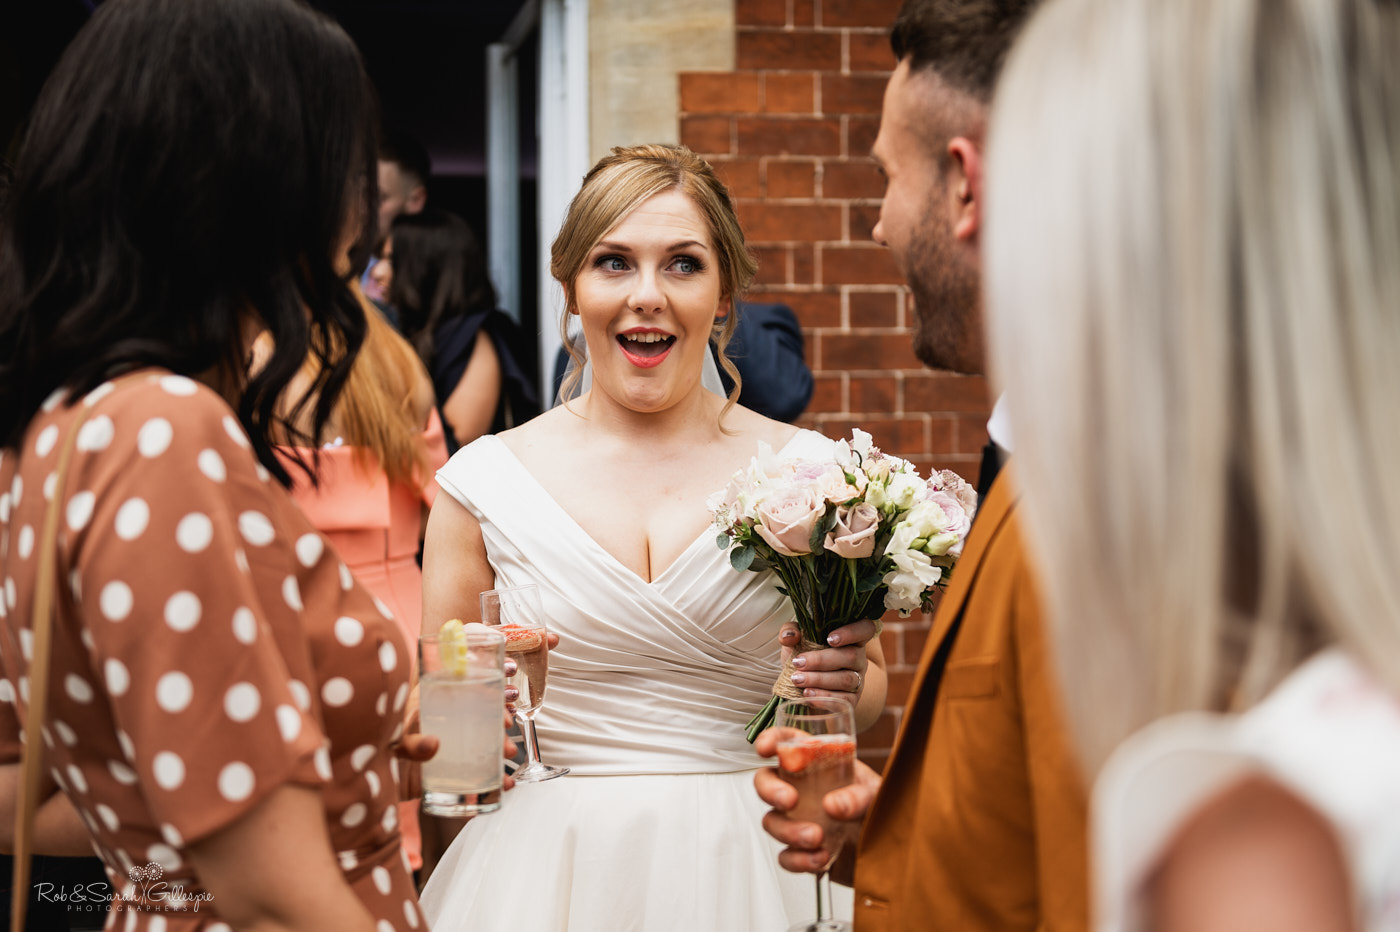 Bride and groom mingle with guests at Pendrell Hall wedding